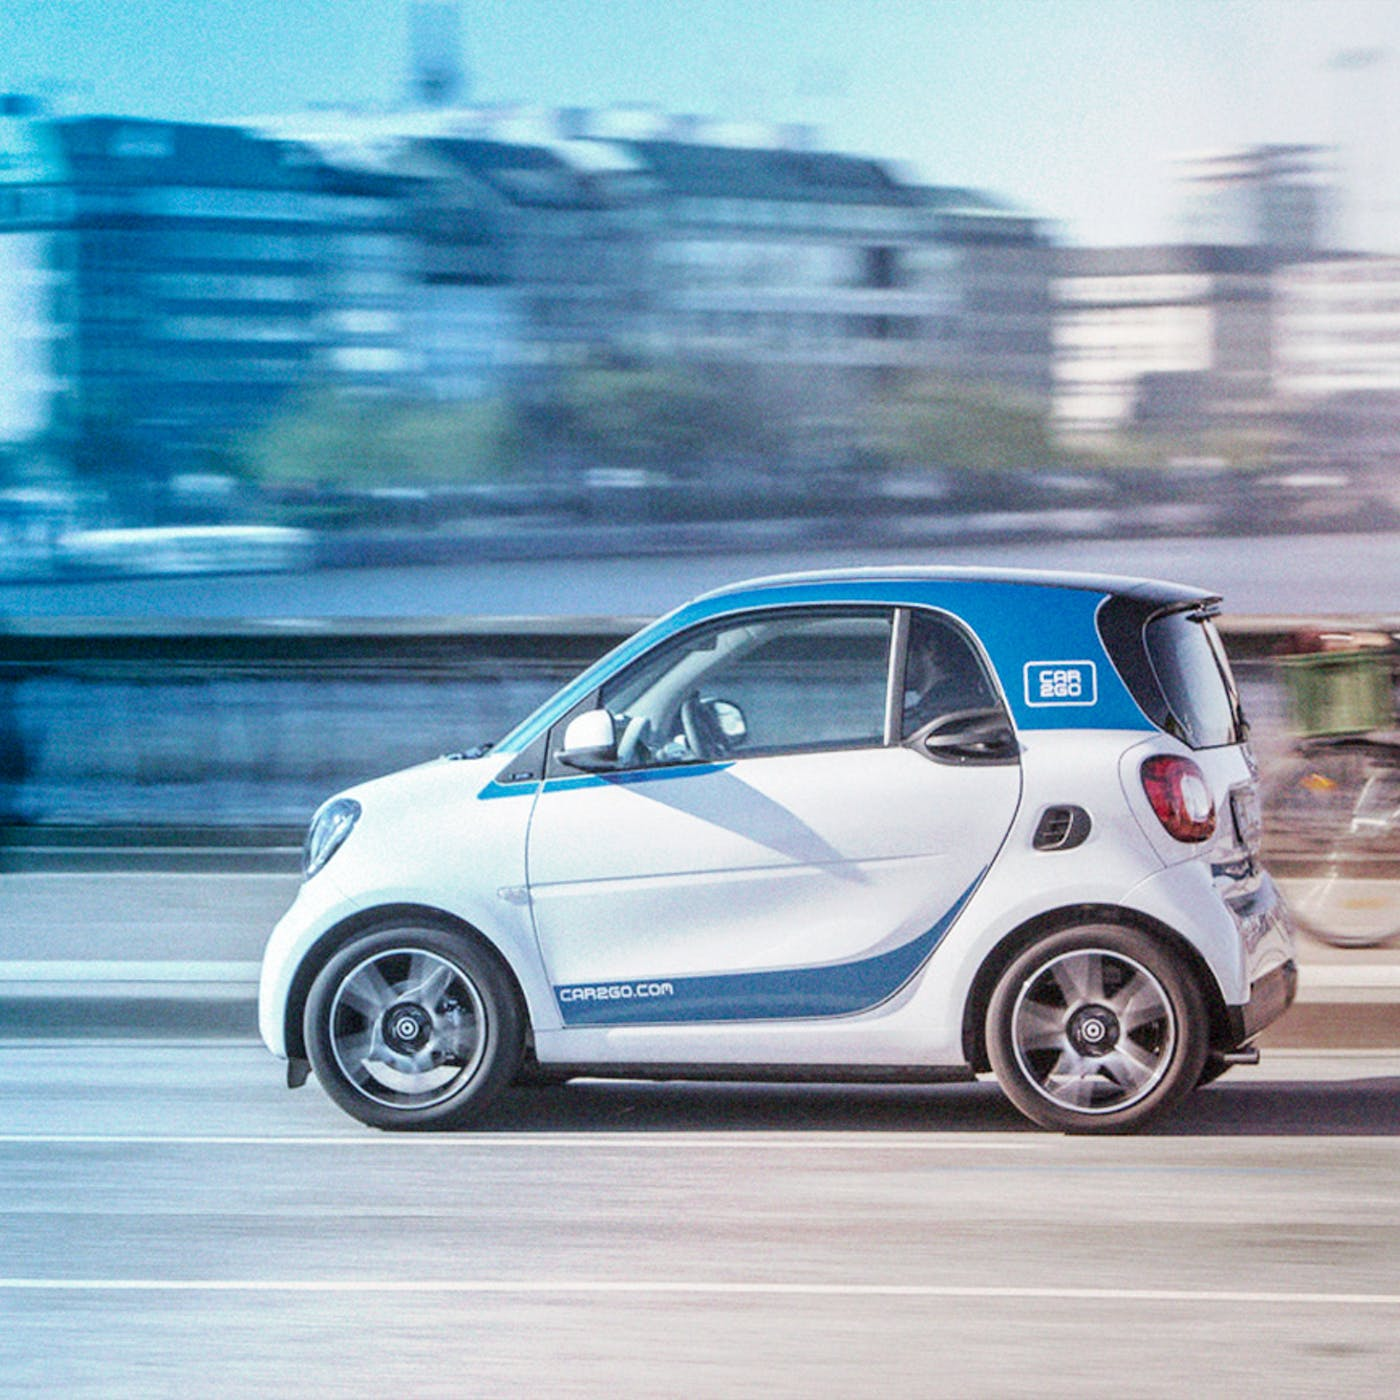 Car To Go >> Thefts Of Austin Based Car2go Rentals Show The Vulnerability